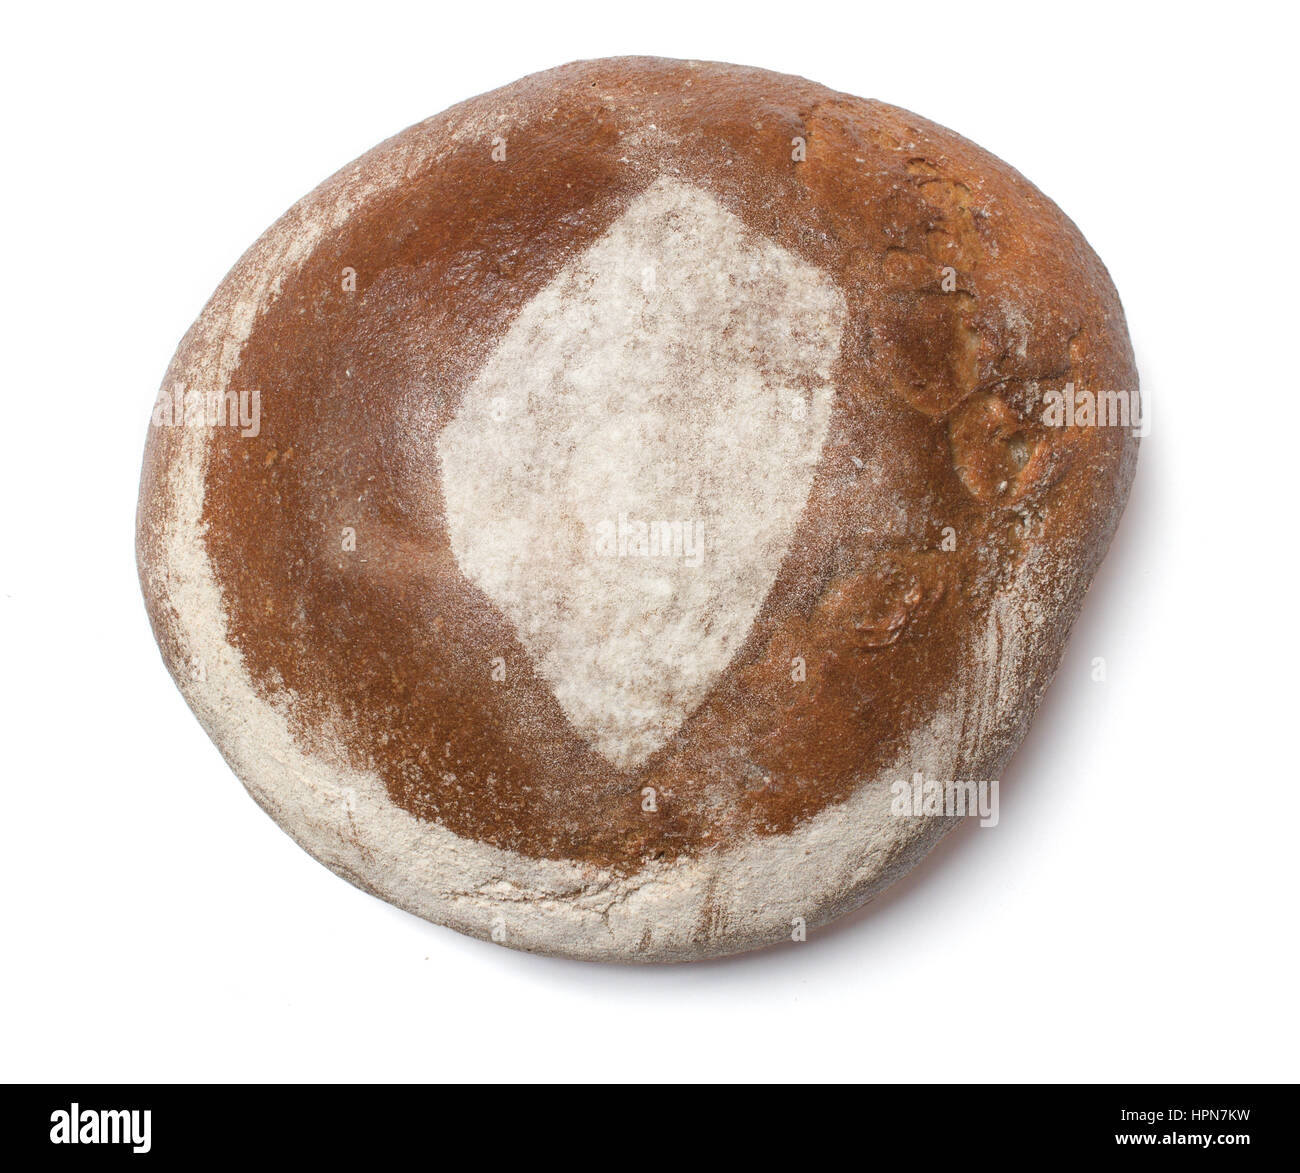 A freshly baked loaf of bread covered with rye flour in the shape of Swaziland.(series) Stock Photo